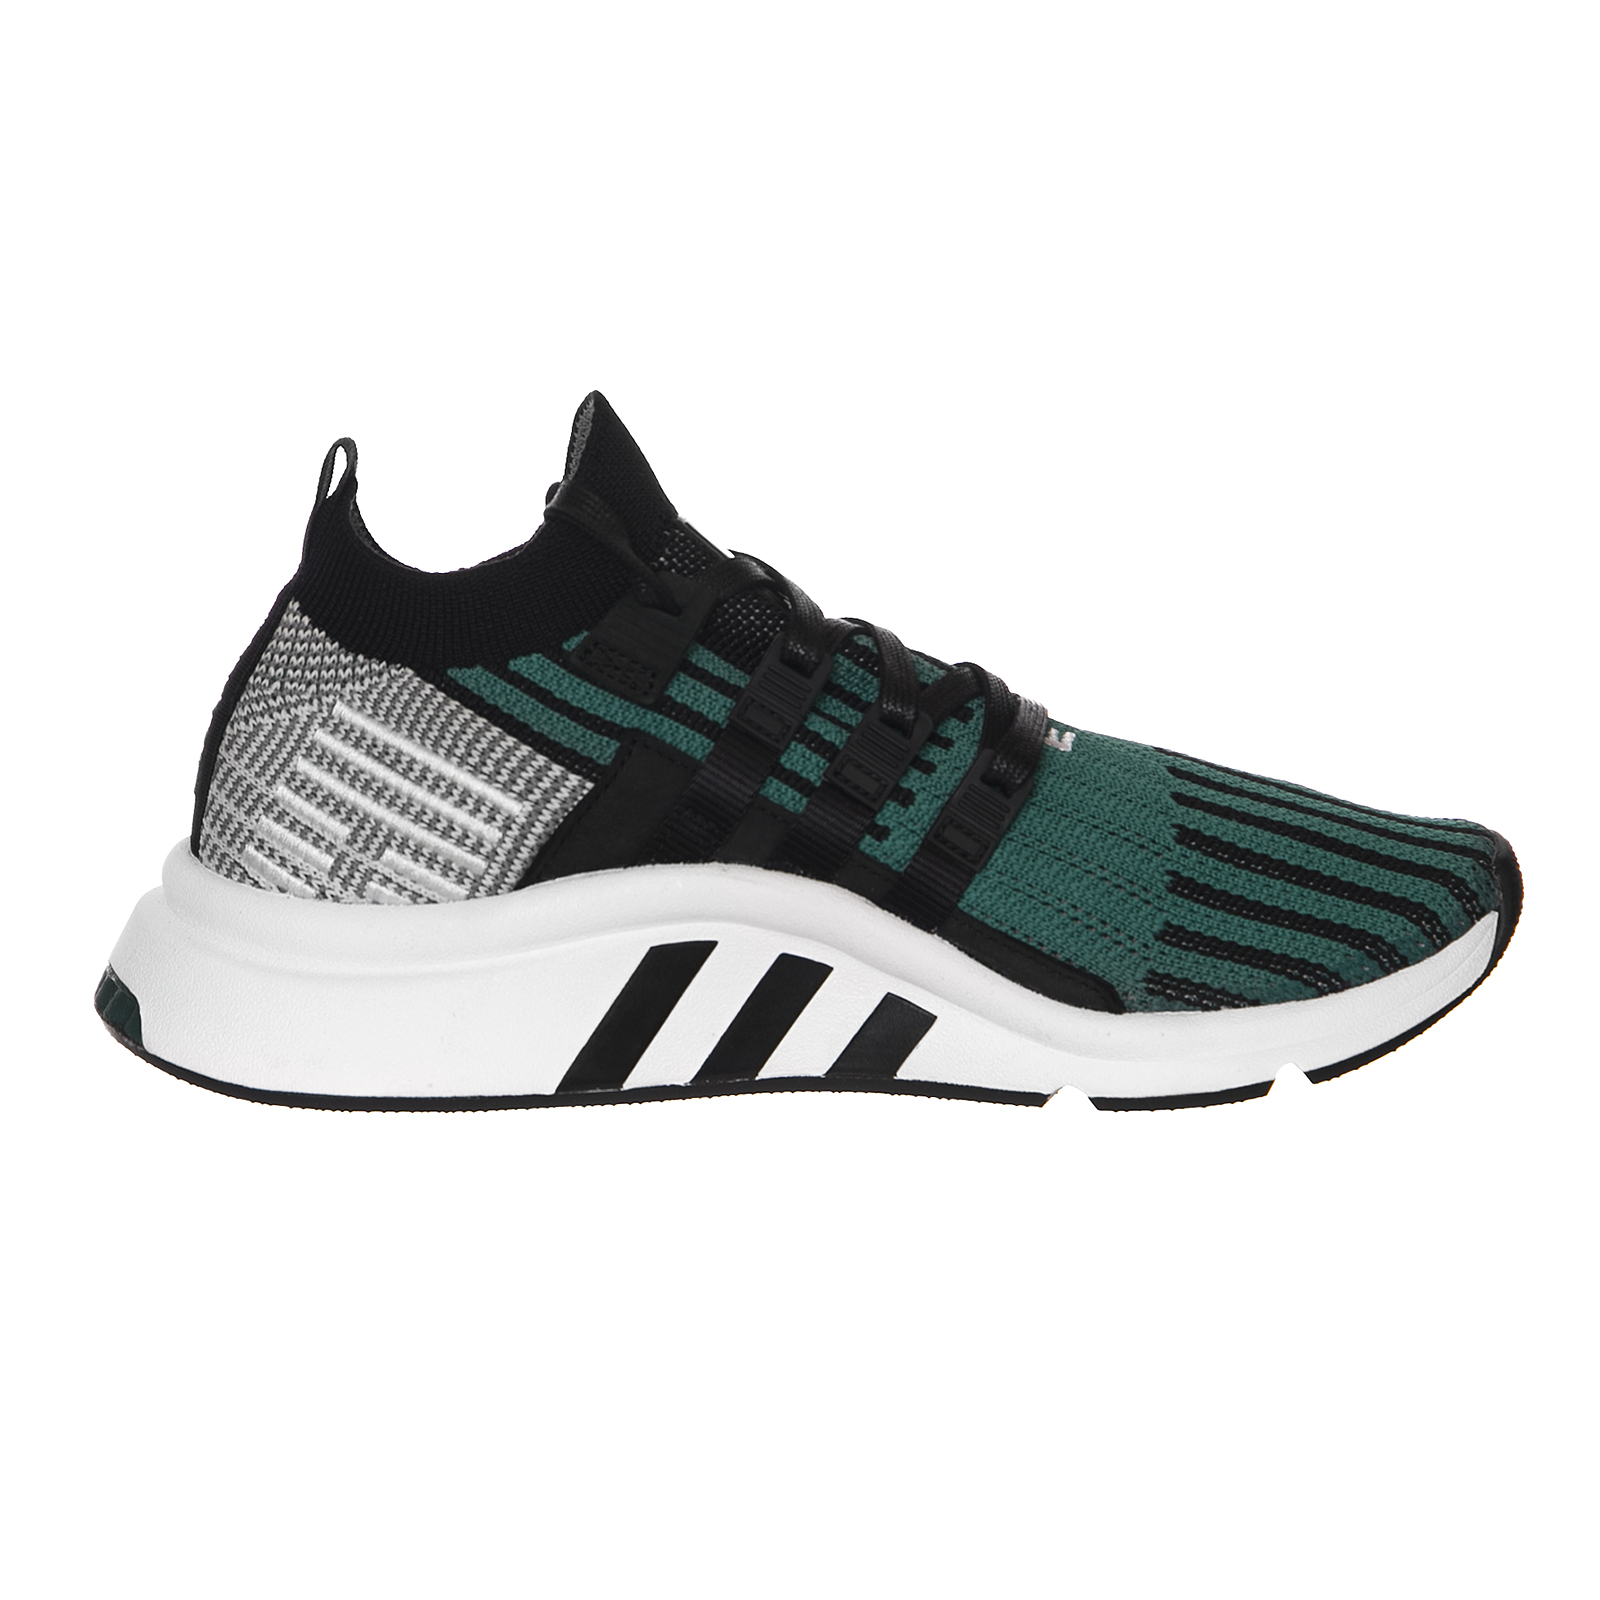 reputable site d6ceb 67b5d ... Picture 2 of 6 Picture 3 of 6 Picture 4 of 6. 3. Adidas Sneakers Eqt  Support Mid Adv Black  Black  Green Black